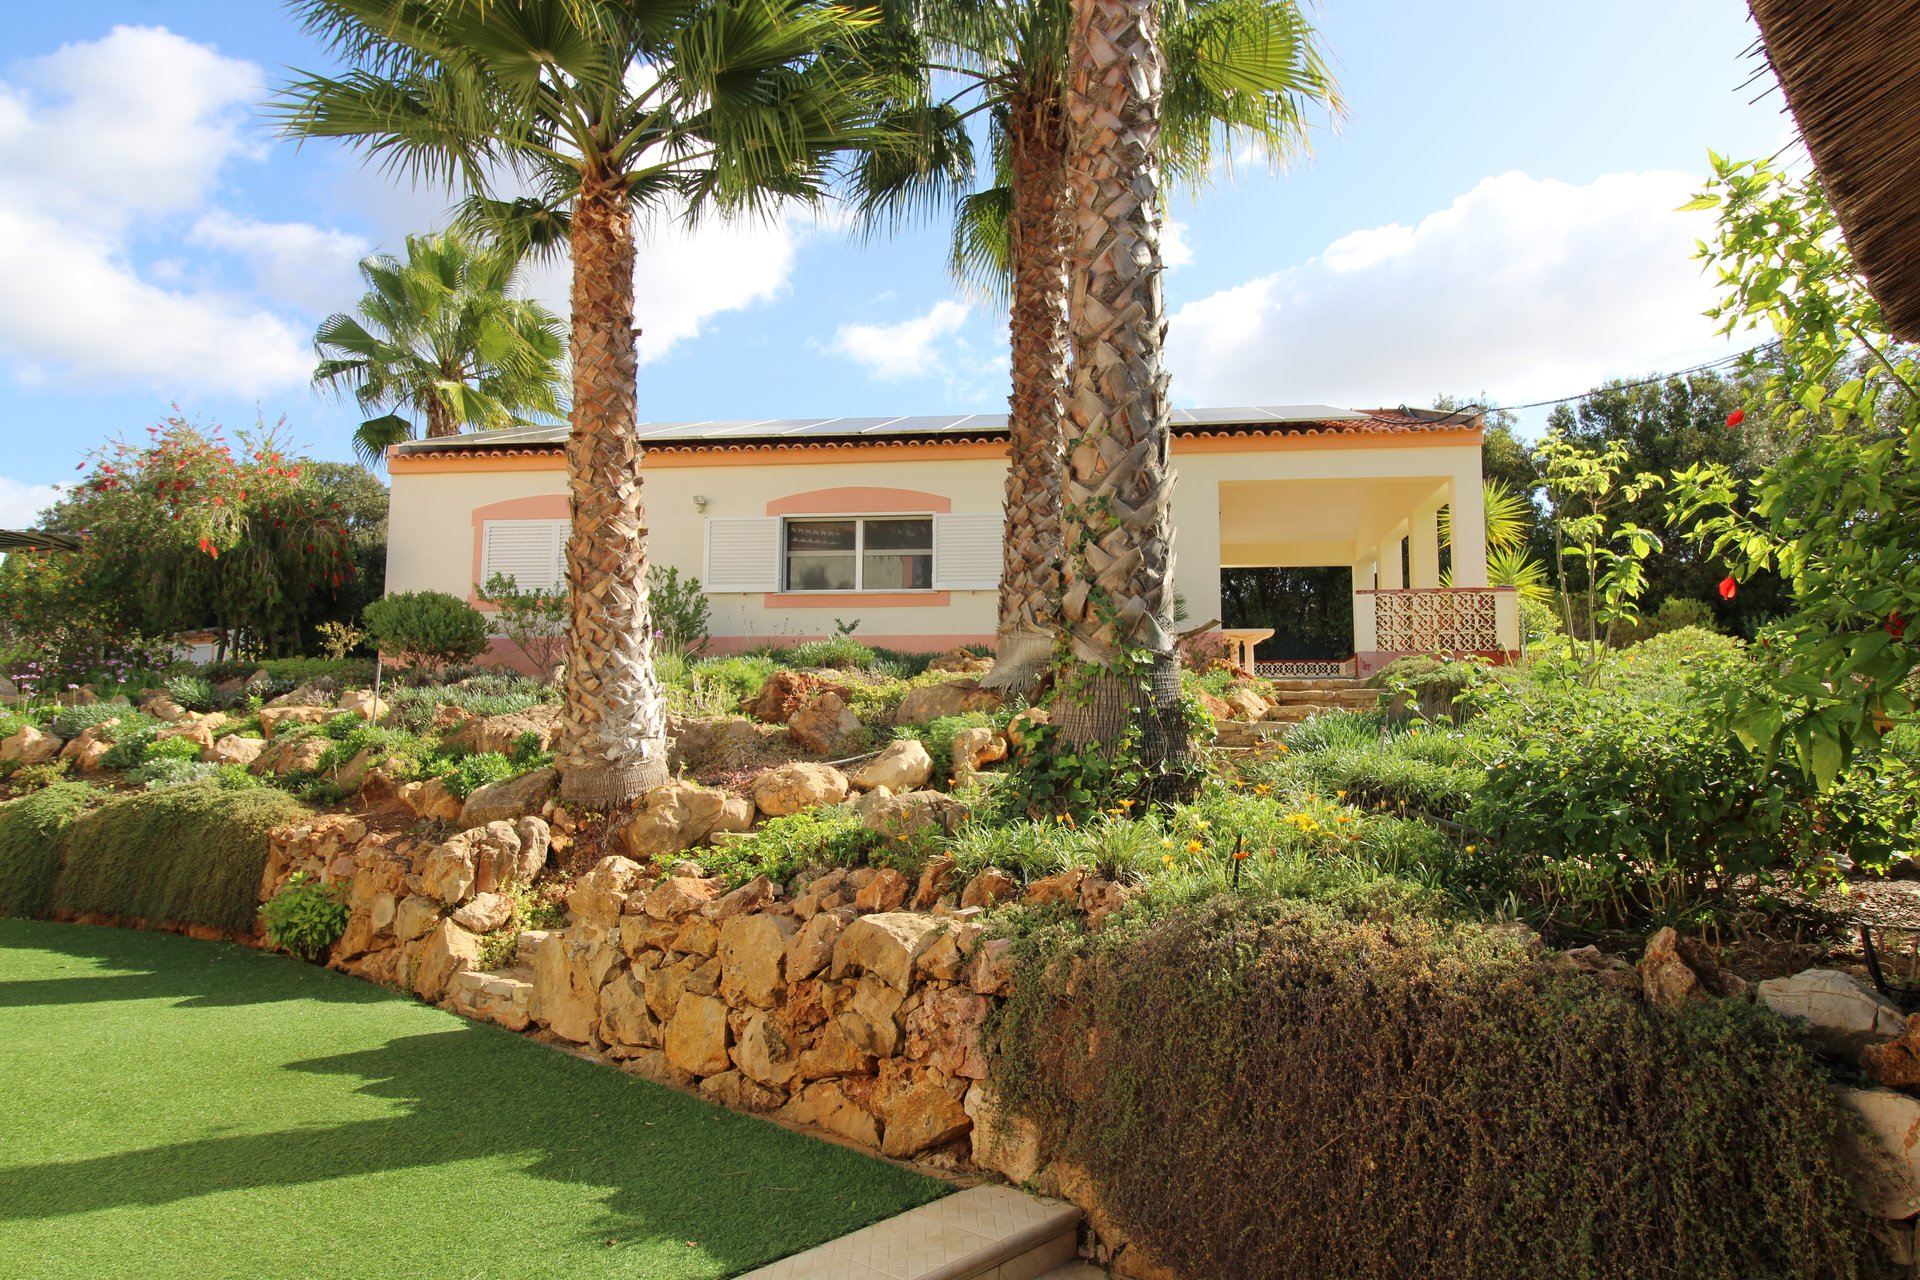 5 Bedroom Villa Alvor, Western Algarve Ref: MV24155